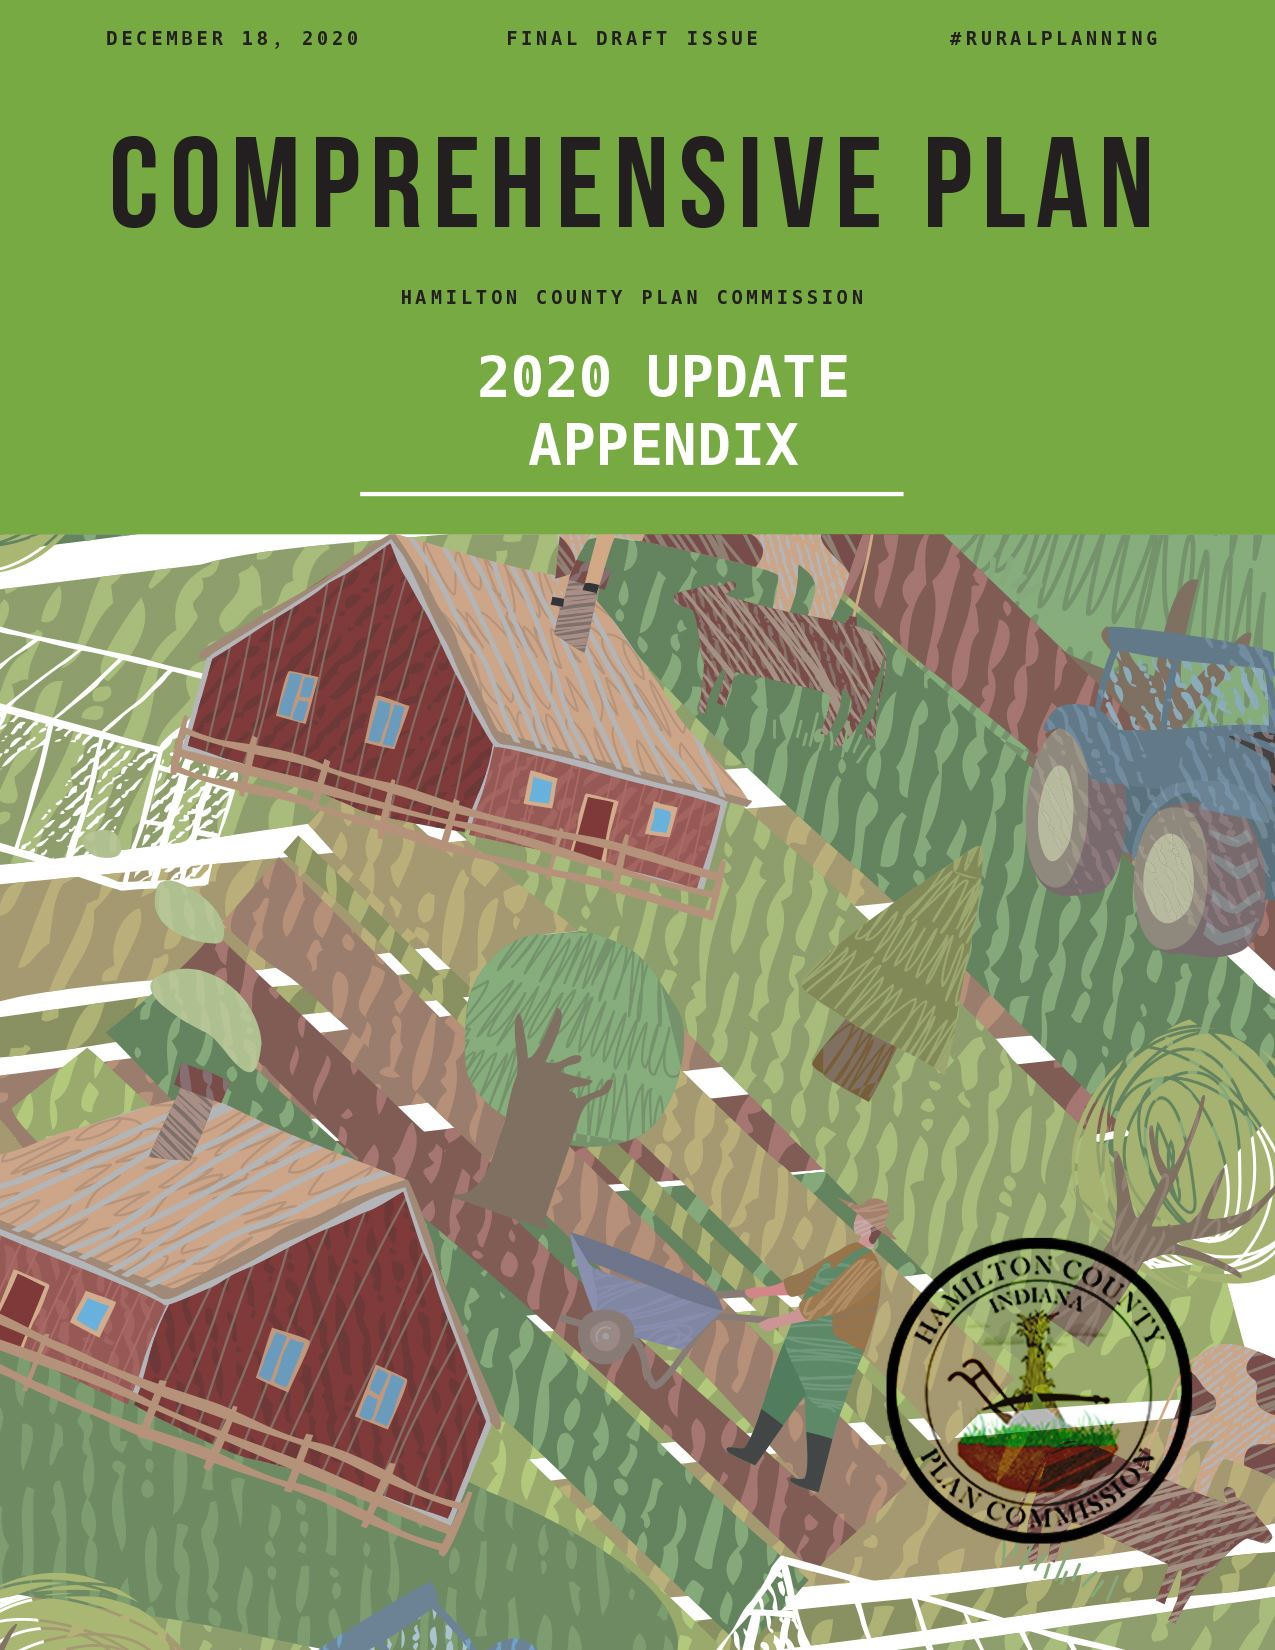 2020 Comp Plan Appendix DRAFT 12172020_COVER Opens in new window